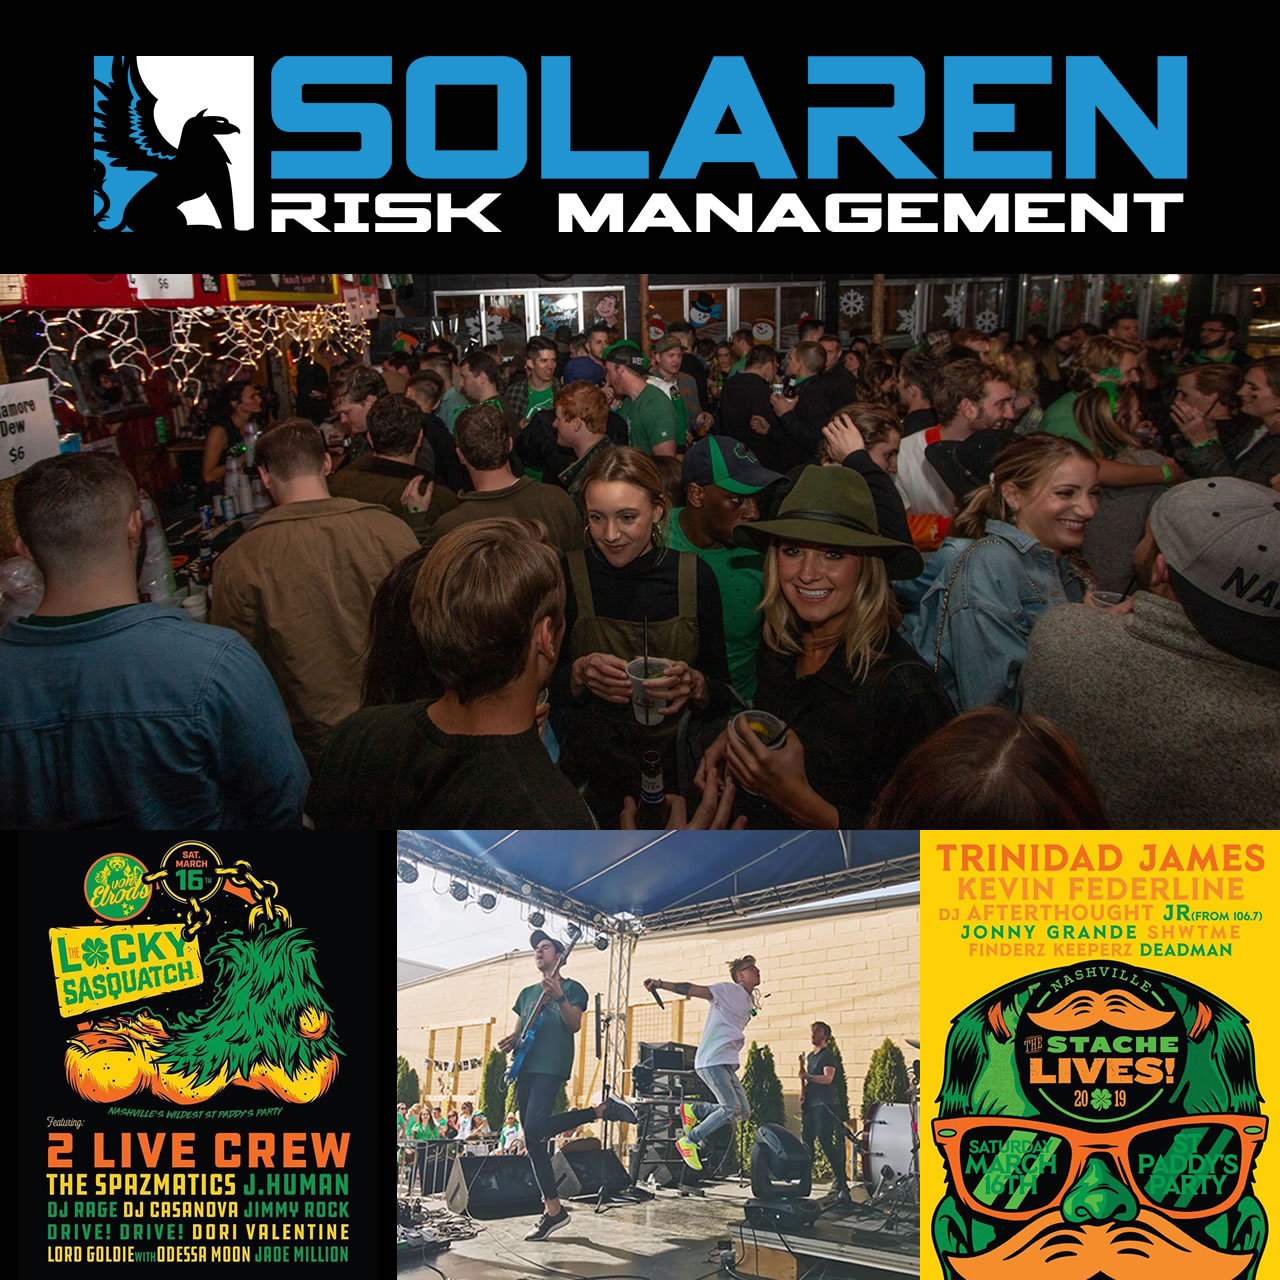 solaren-police-special-event-security-companies-in-nashville-traffic-management